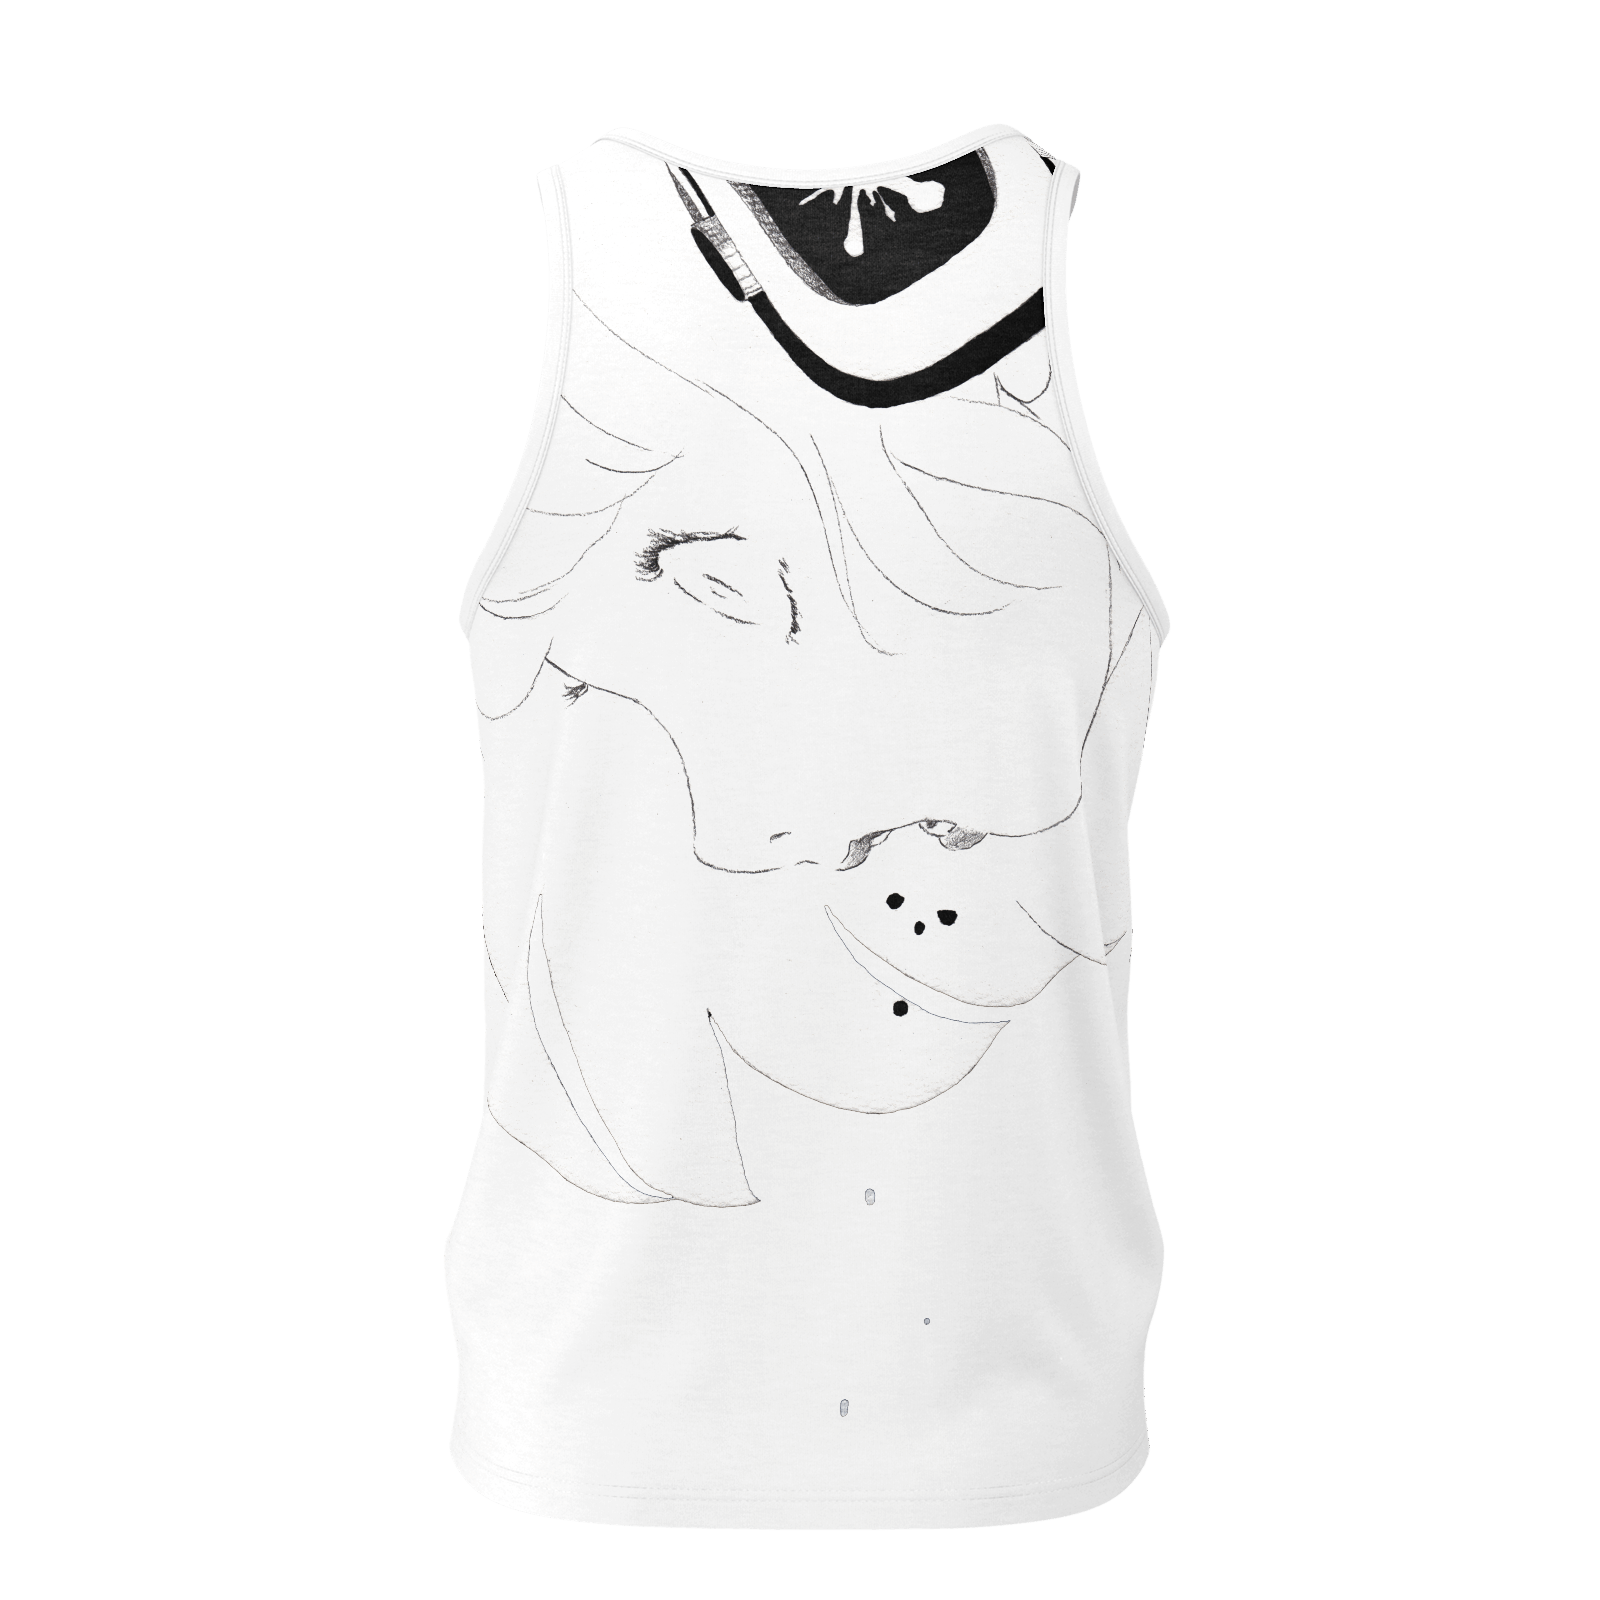 Paranoia Girls - tank top - 2 sided - Larissa Loses - White - Poly 2019